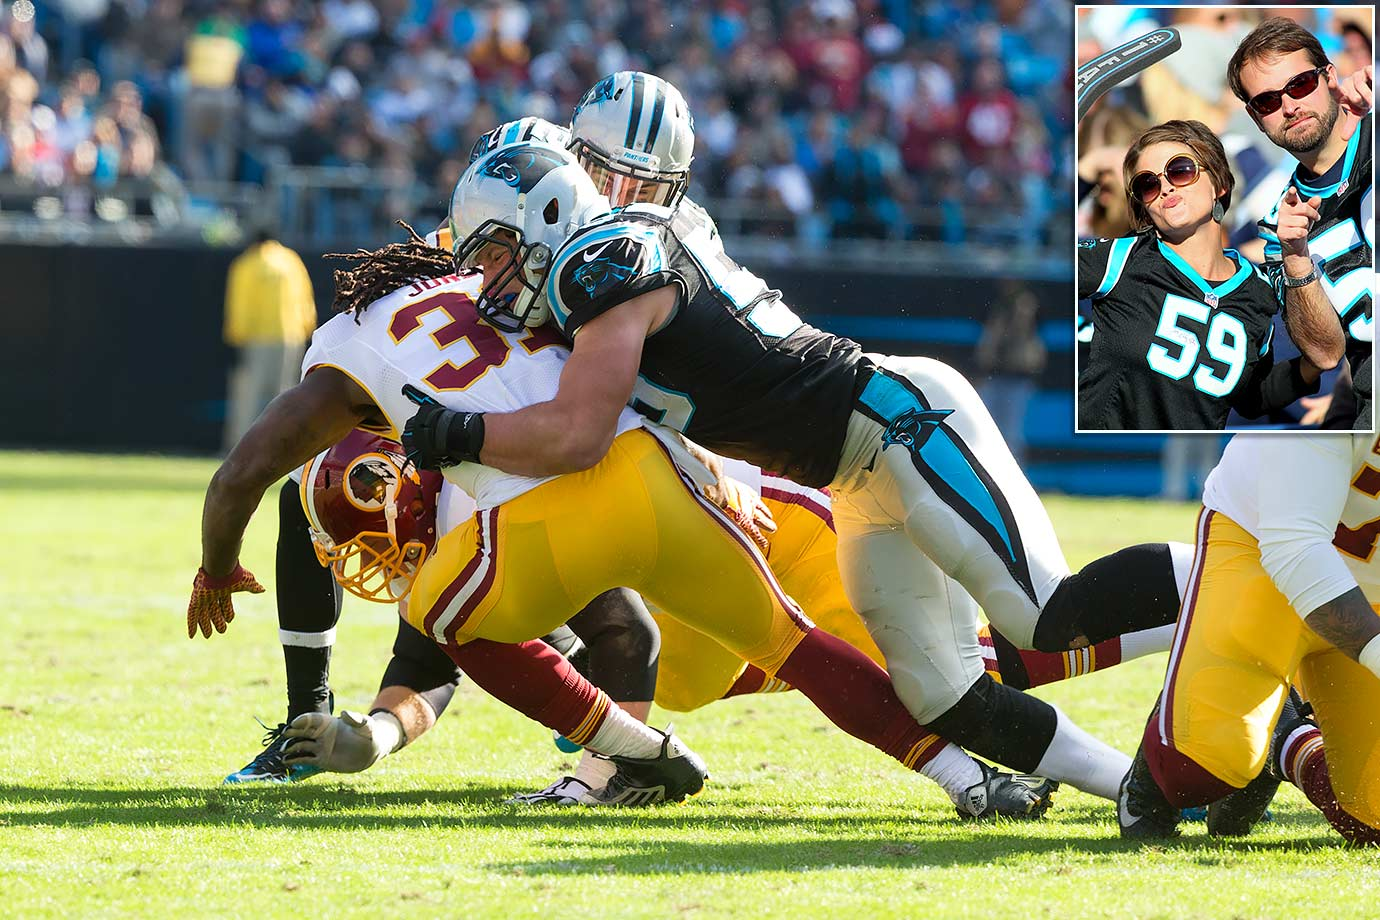 LB, Carolina Panthers